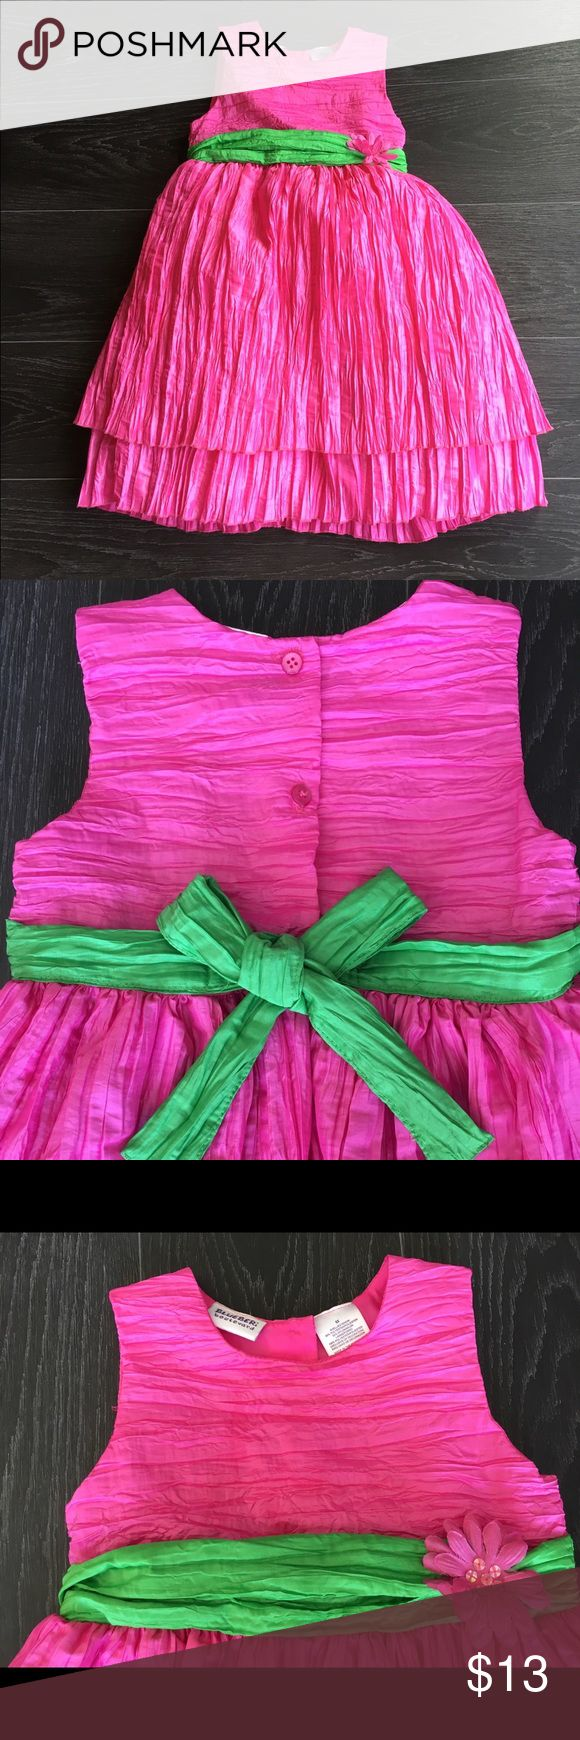 Girls Pink Dress Beautiful girls pink dress size 6x.  This would fit a size 7 as well depending on height.  Will take measurements.  Dress has button back, crinkle pattern throughout and a full skirt.  A very pretty dress to twirl in. 🌺 Great Condition with no marks or rips! From a smoke and pet free home!  20% of 2+ bundles! Dresses